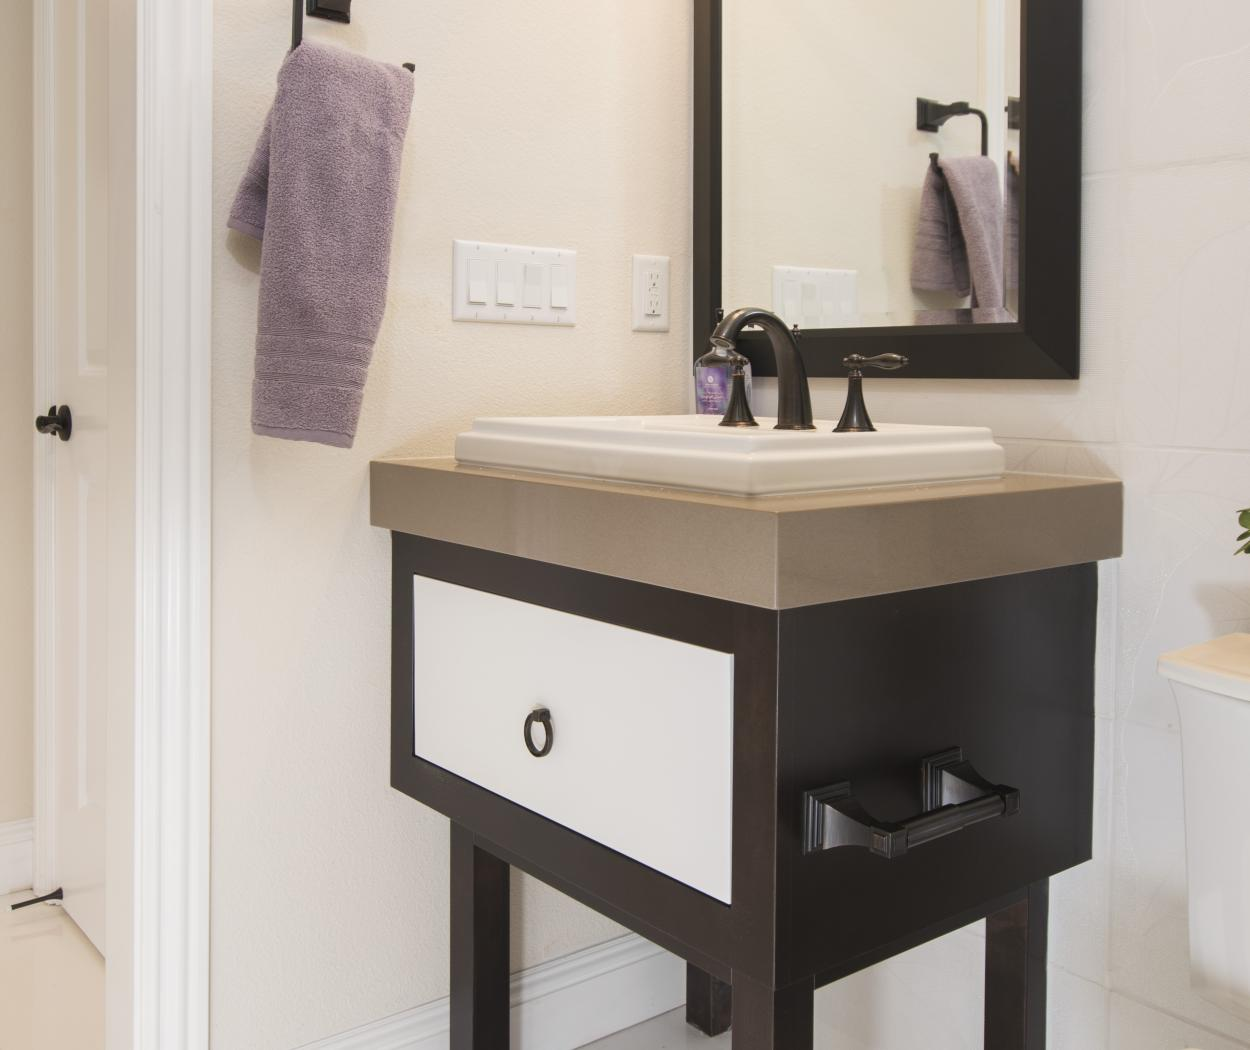 Contemporary Two Toned Bathroom Vanity with a Tan Counter Top and an Oil Rubbed Bronze Faucet